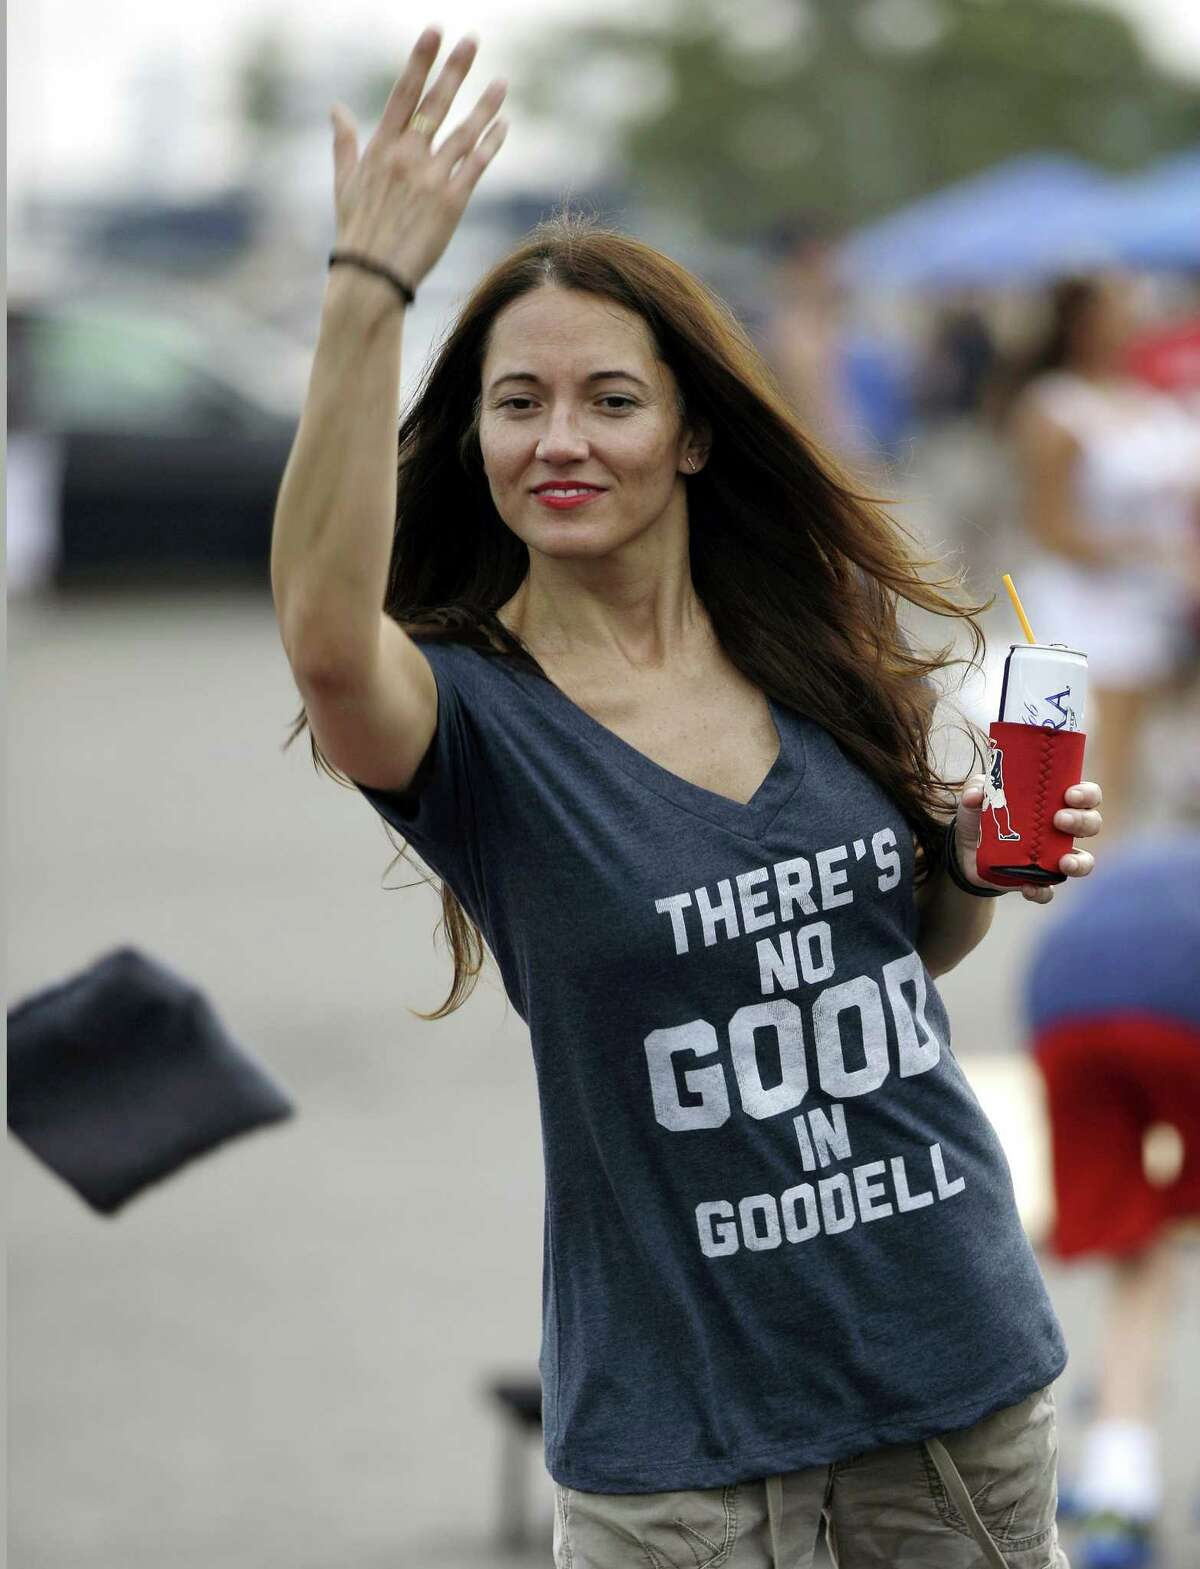 New England Patriots fan Karen Gutierrez wears a shirt that refers to NFL Commissioner Roger Goodell as she plays a bean bag game in the parking lot of Gillette Stadium before the Pats' preseason game against the New York Giants on Thursday in Foxborough, Mass.